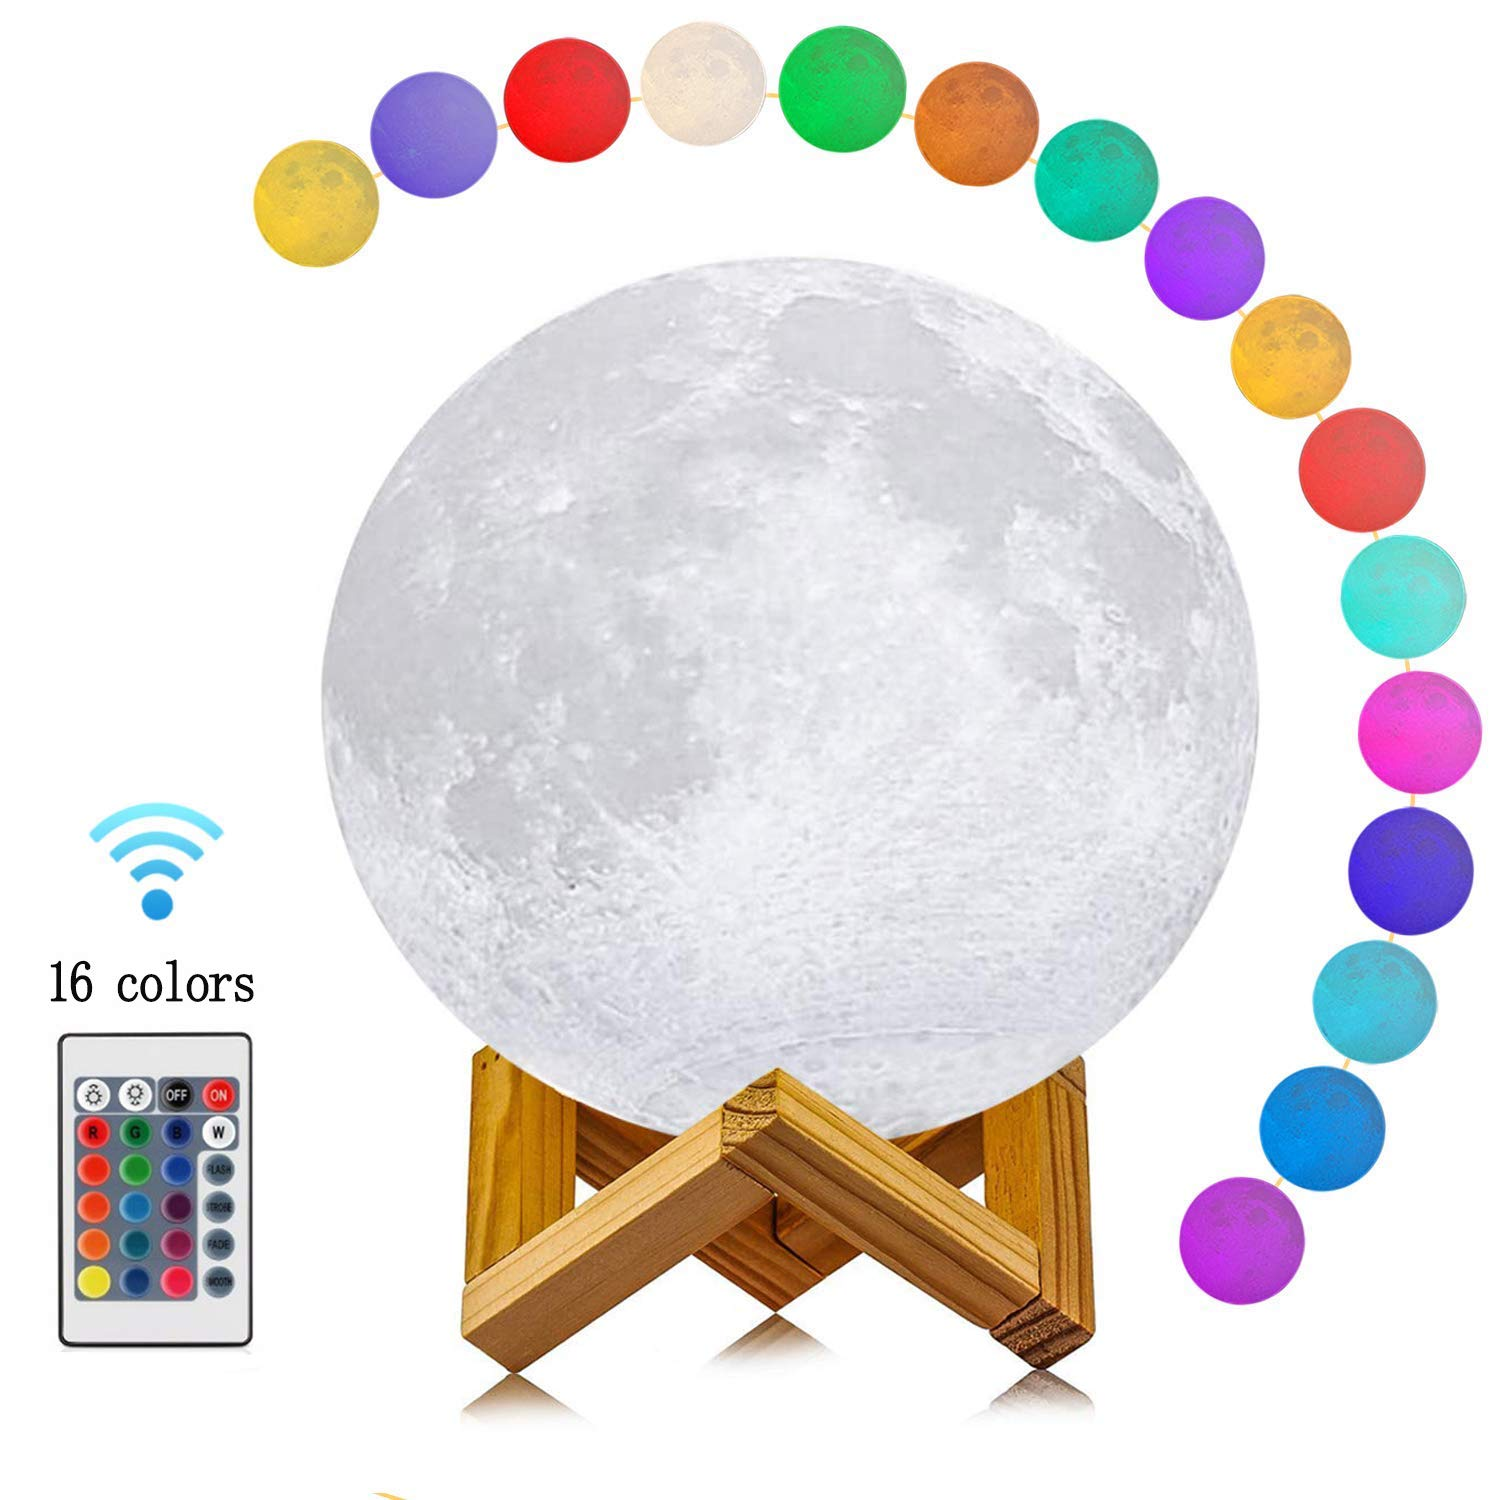 Moon Lamp 16 Colors 3D Printing, Yooker Remote Control & Touch Sensor Night Light LED Lunar Lamp with Stand, Remote & USB Cable(7inch) for Kids/Birthday/Anniversary/Christmas Gifts